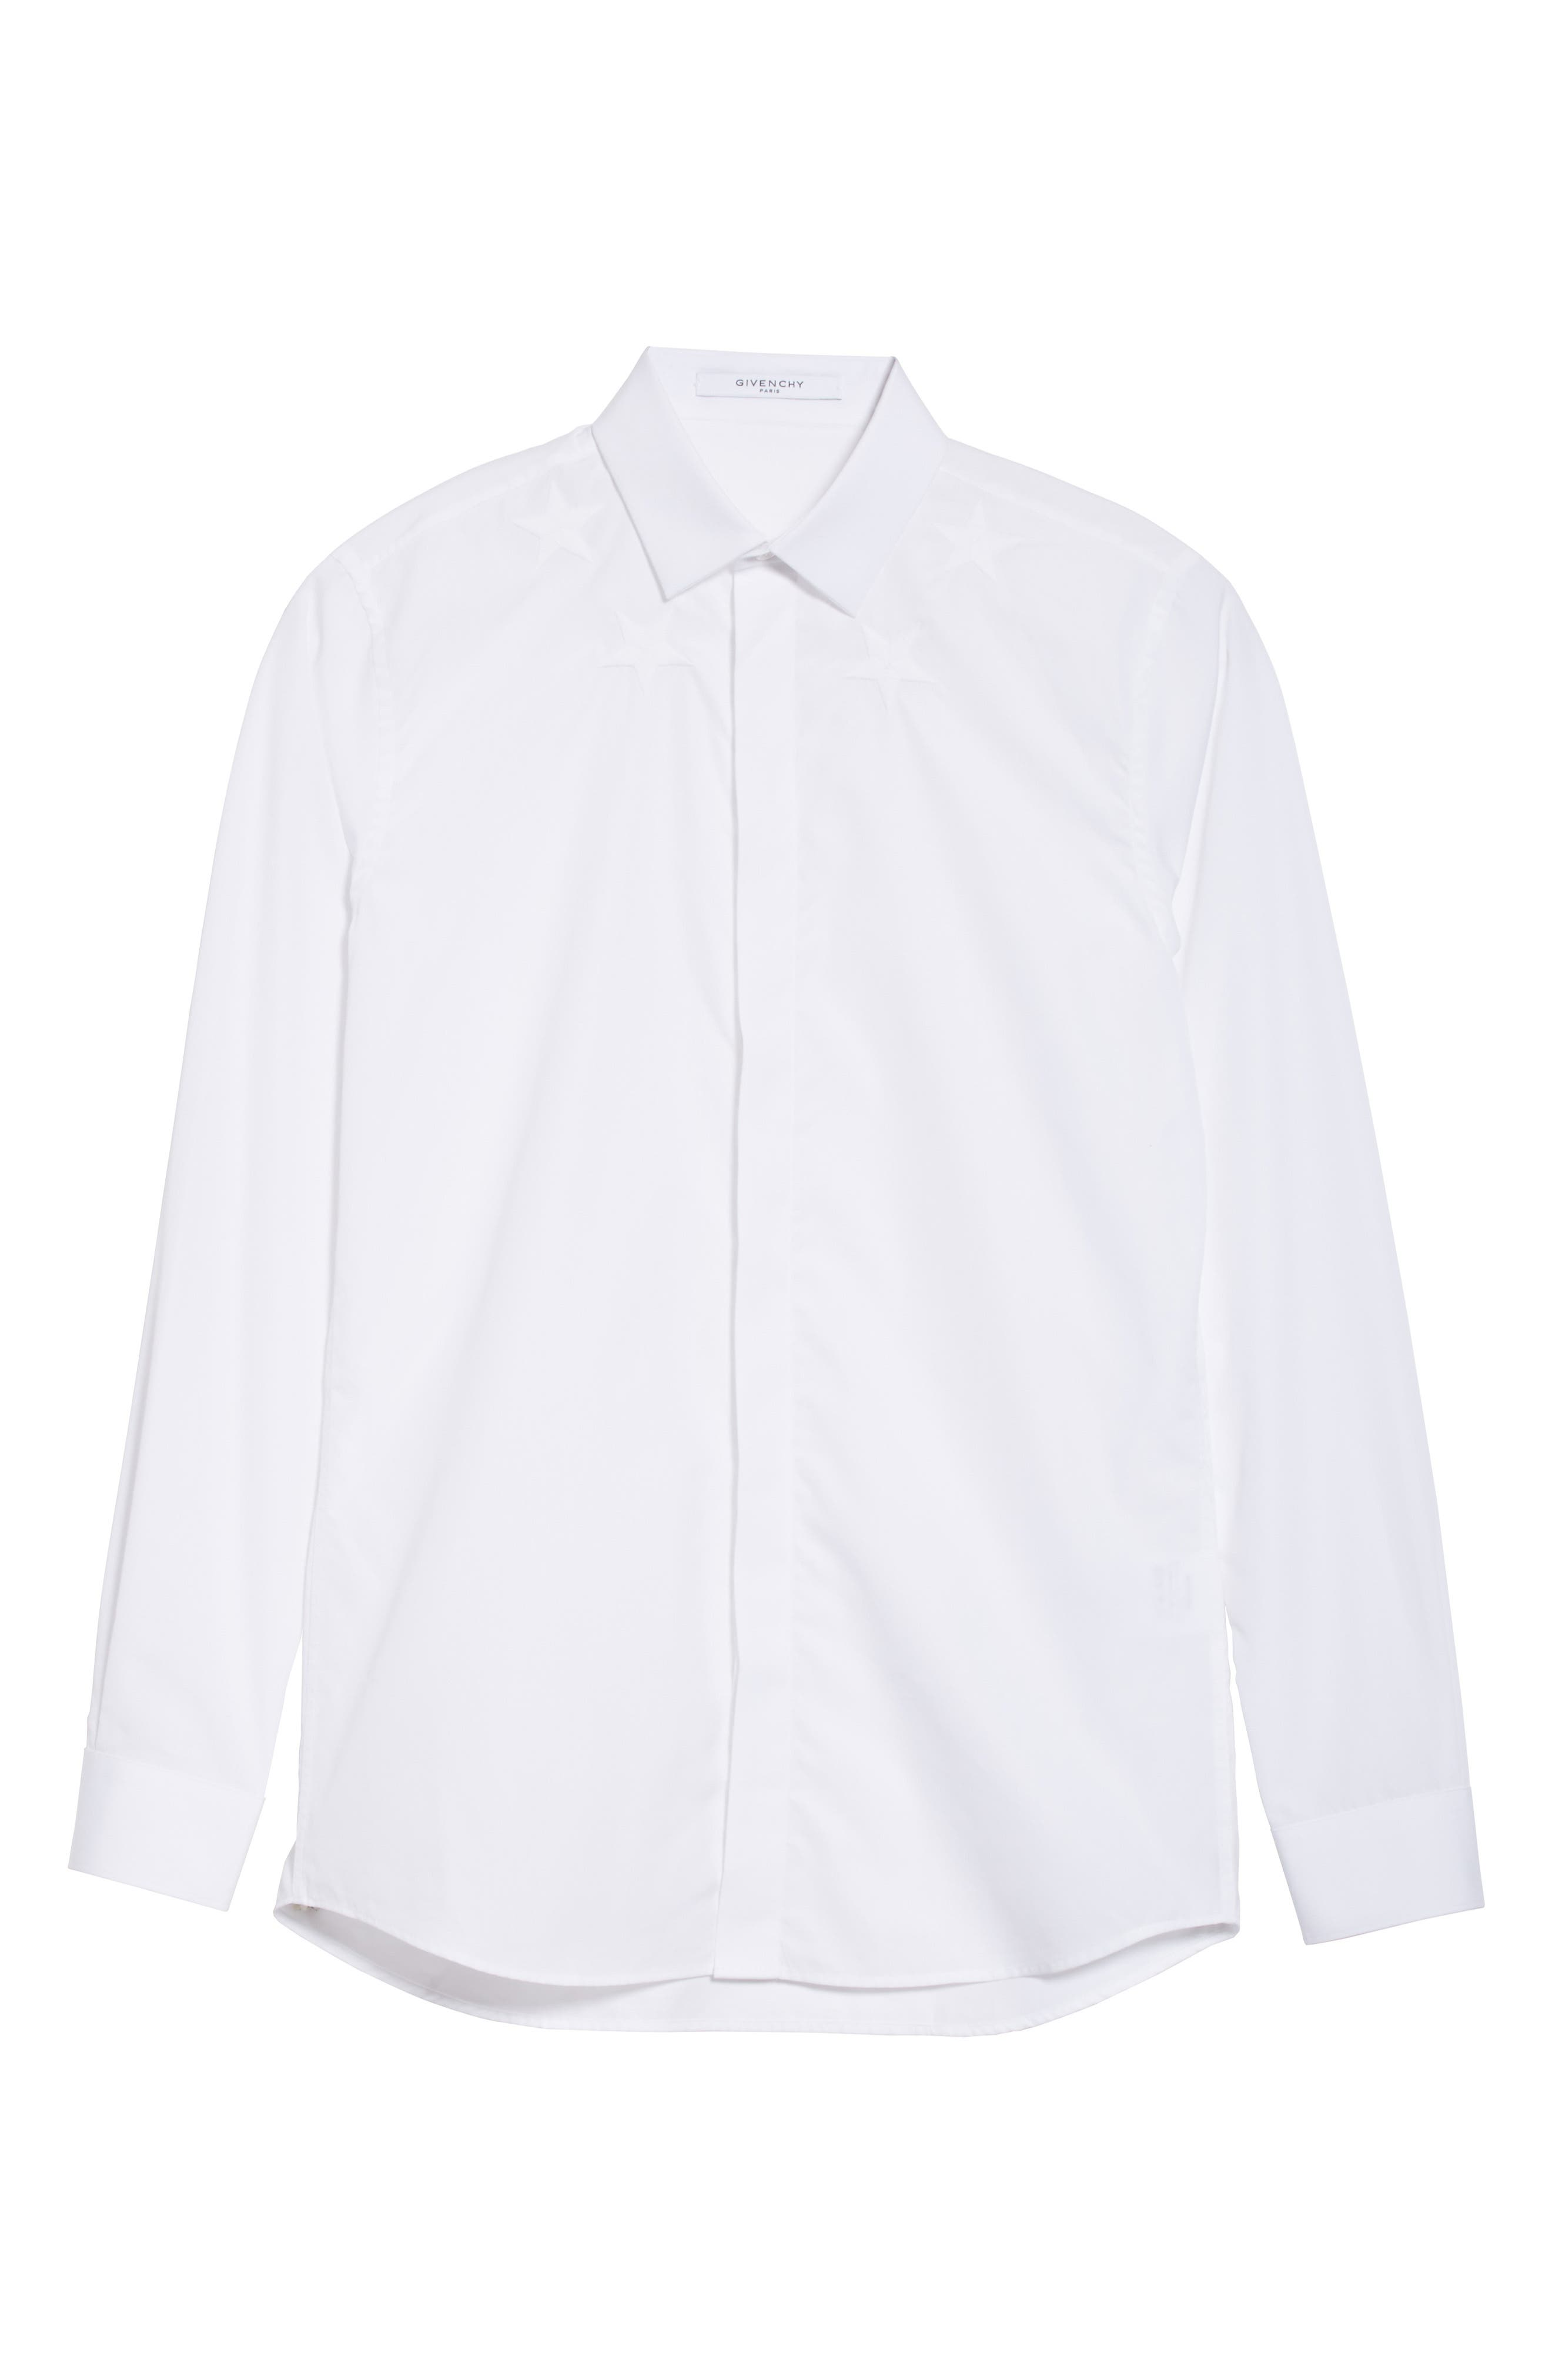 Embroidered Star Dress Shirt,                             Alternate thumbnail 6, color,                             100